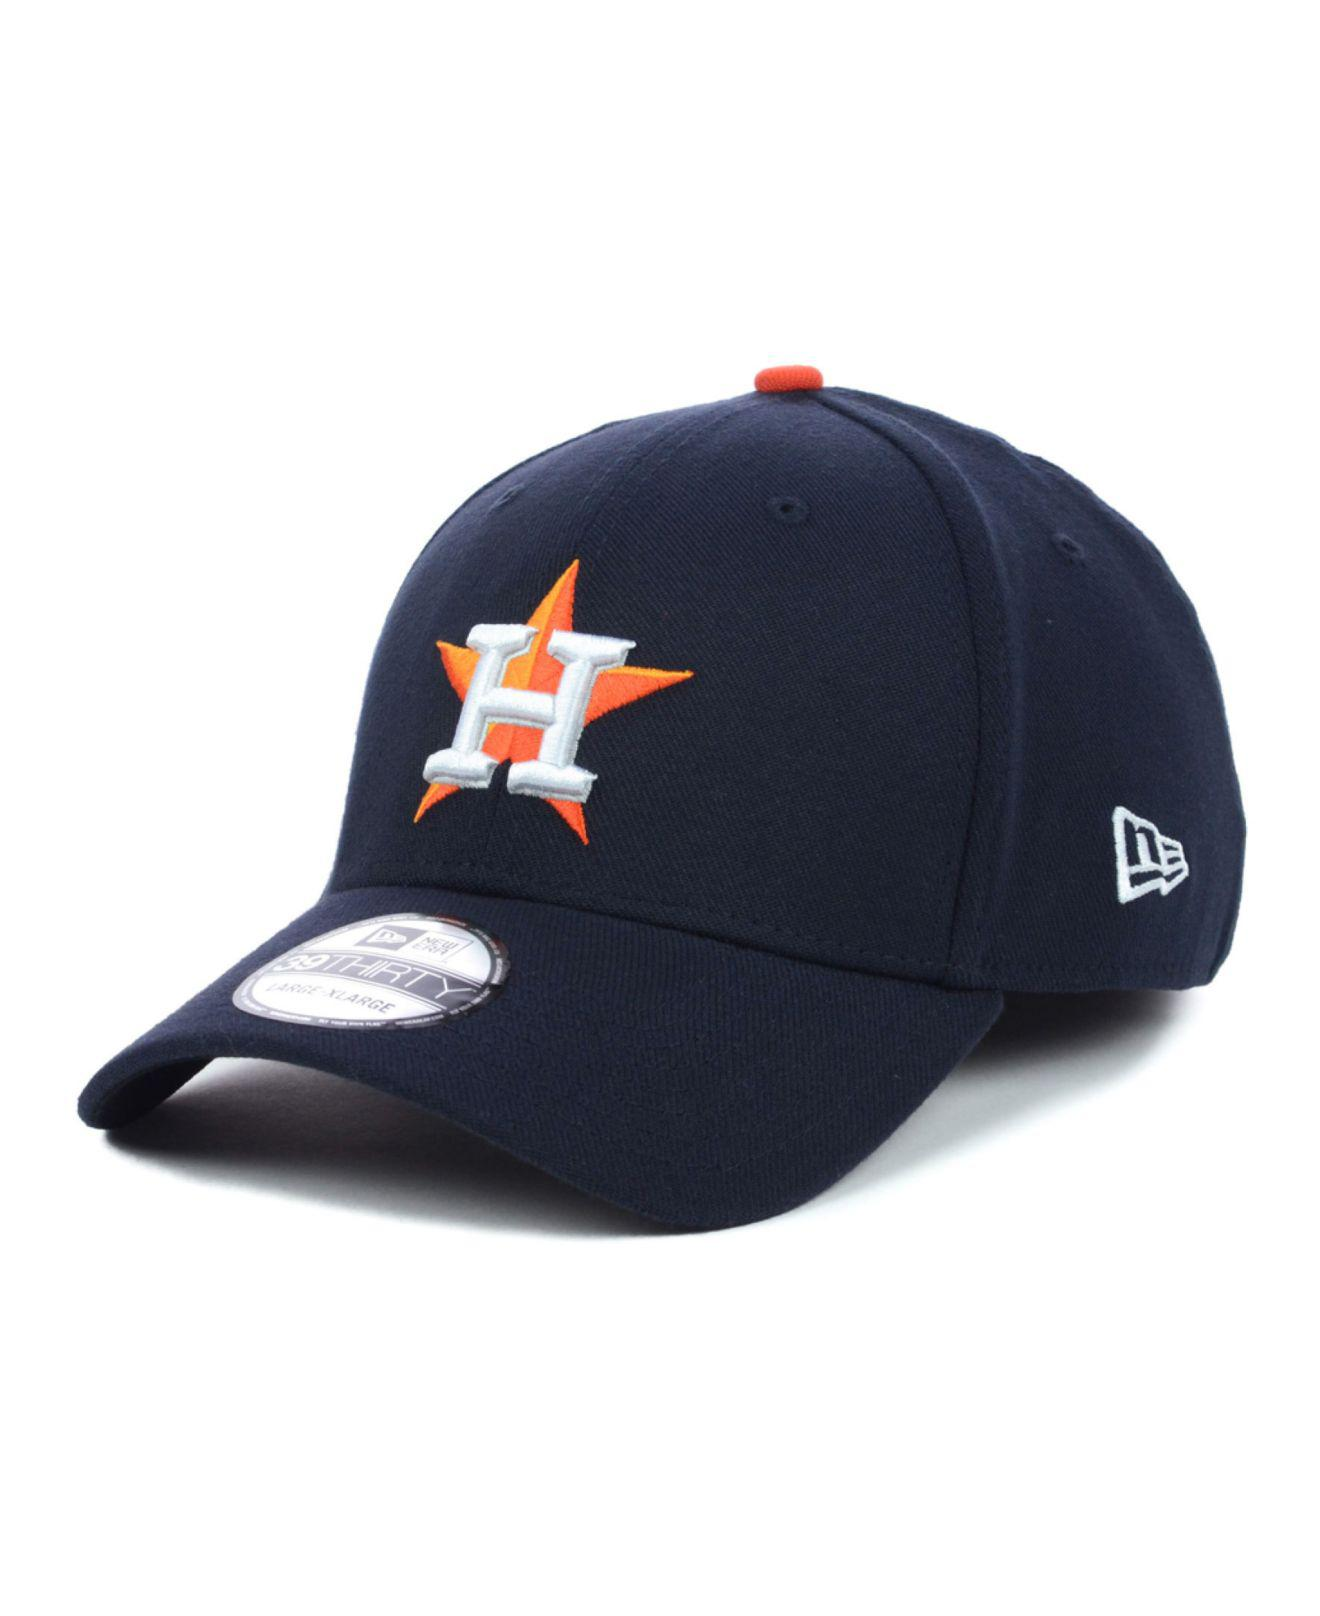 outlet store 5479f d7d7a ... Houston Astros Mlb Team Classic 39thirty Cap for Men - Lyst. View  fullscreen